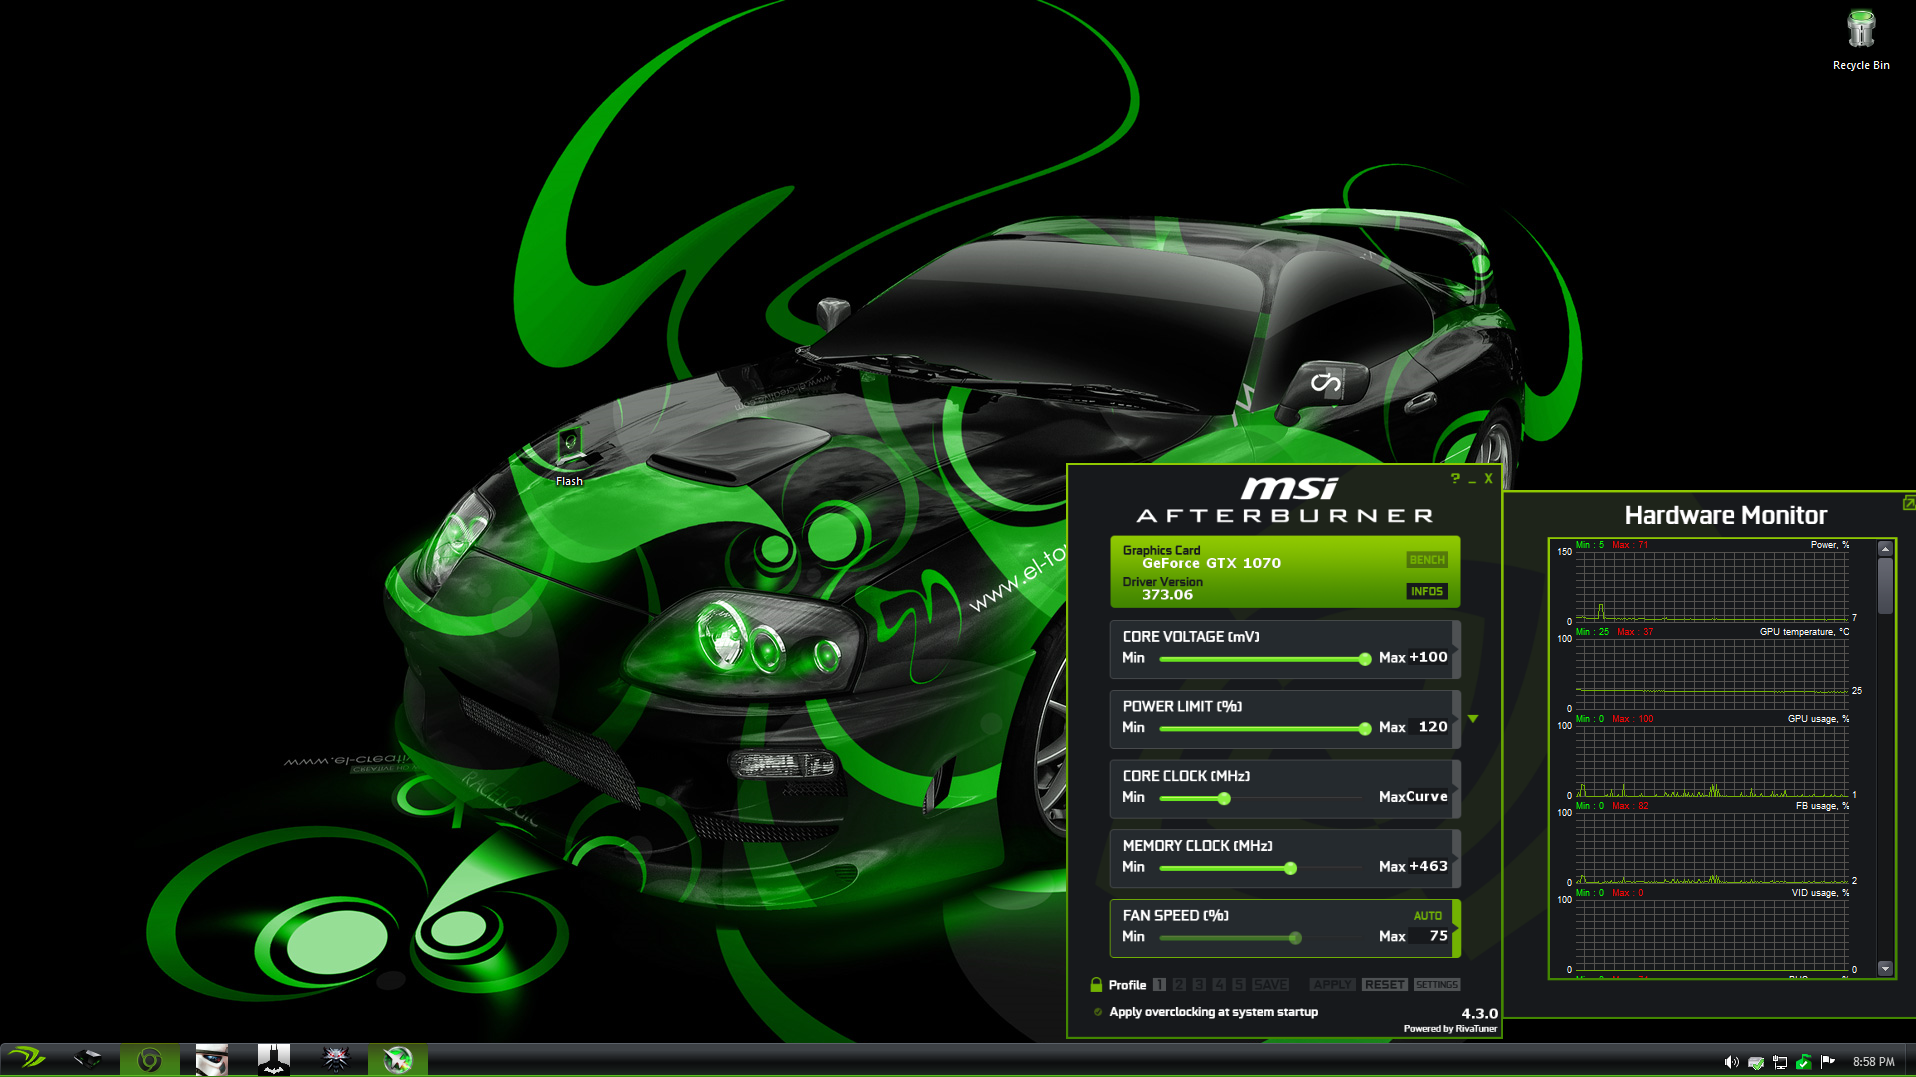 Official] NVIDIA GTX 1070 Owner's Club - Page 751 - Overclock net